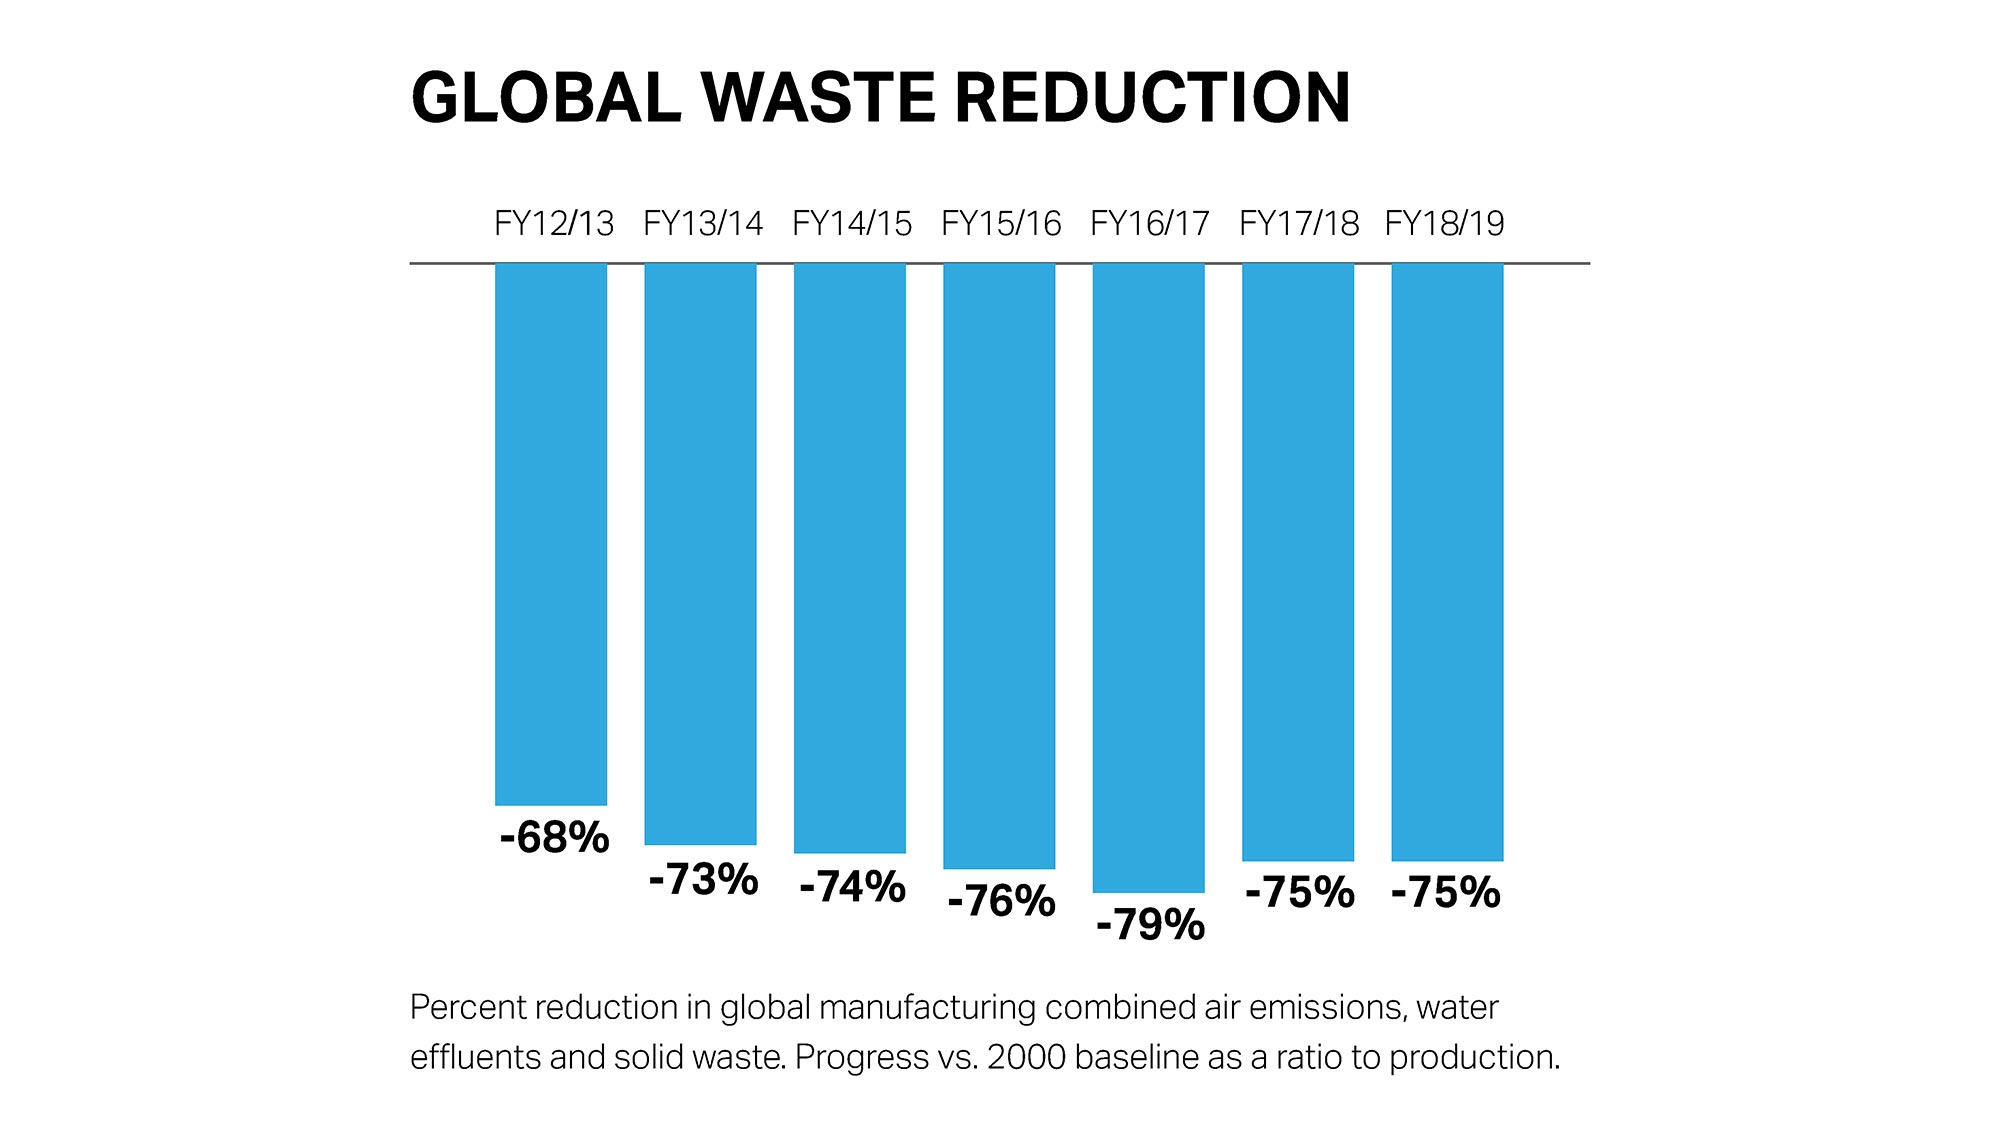 waste reduction chart over the years